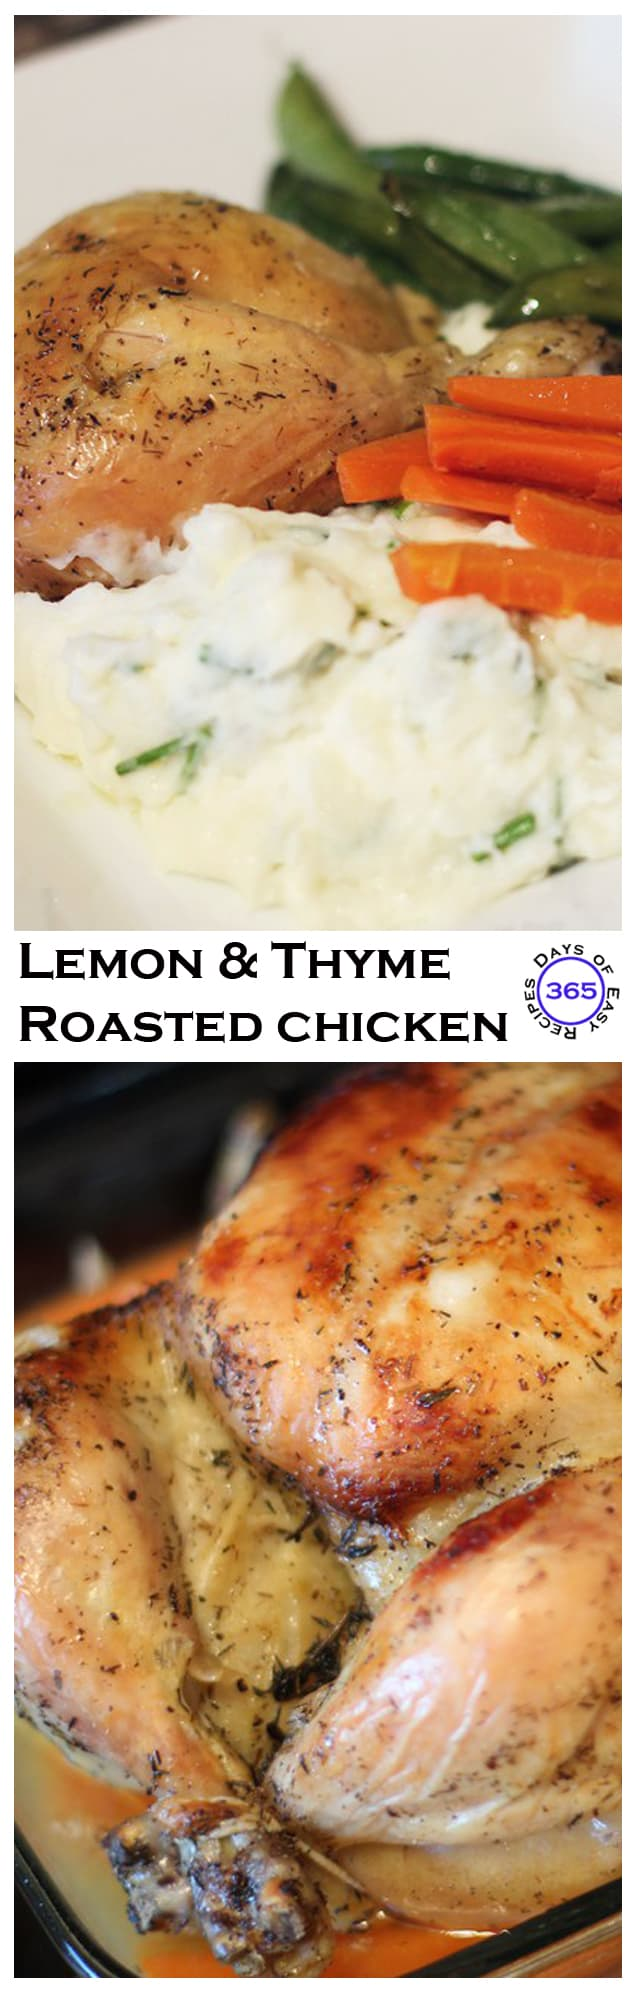 Lemon & Thyme Roasted Chicken | 365 Days of Easy Recipes